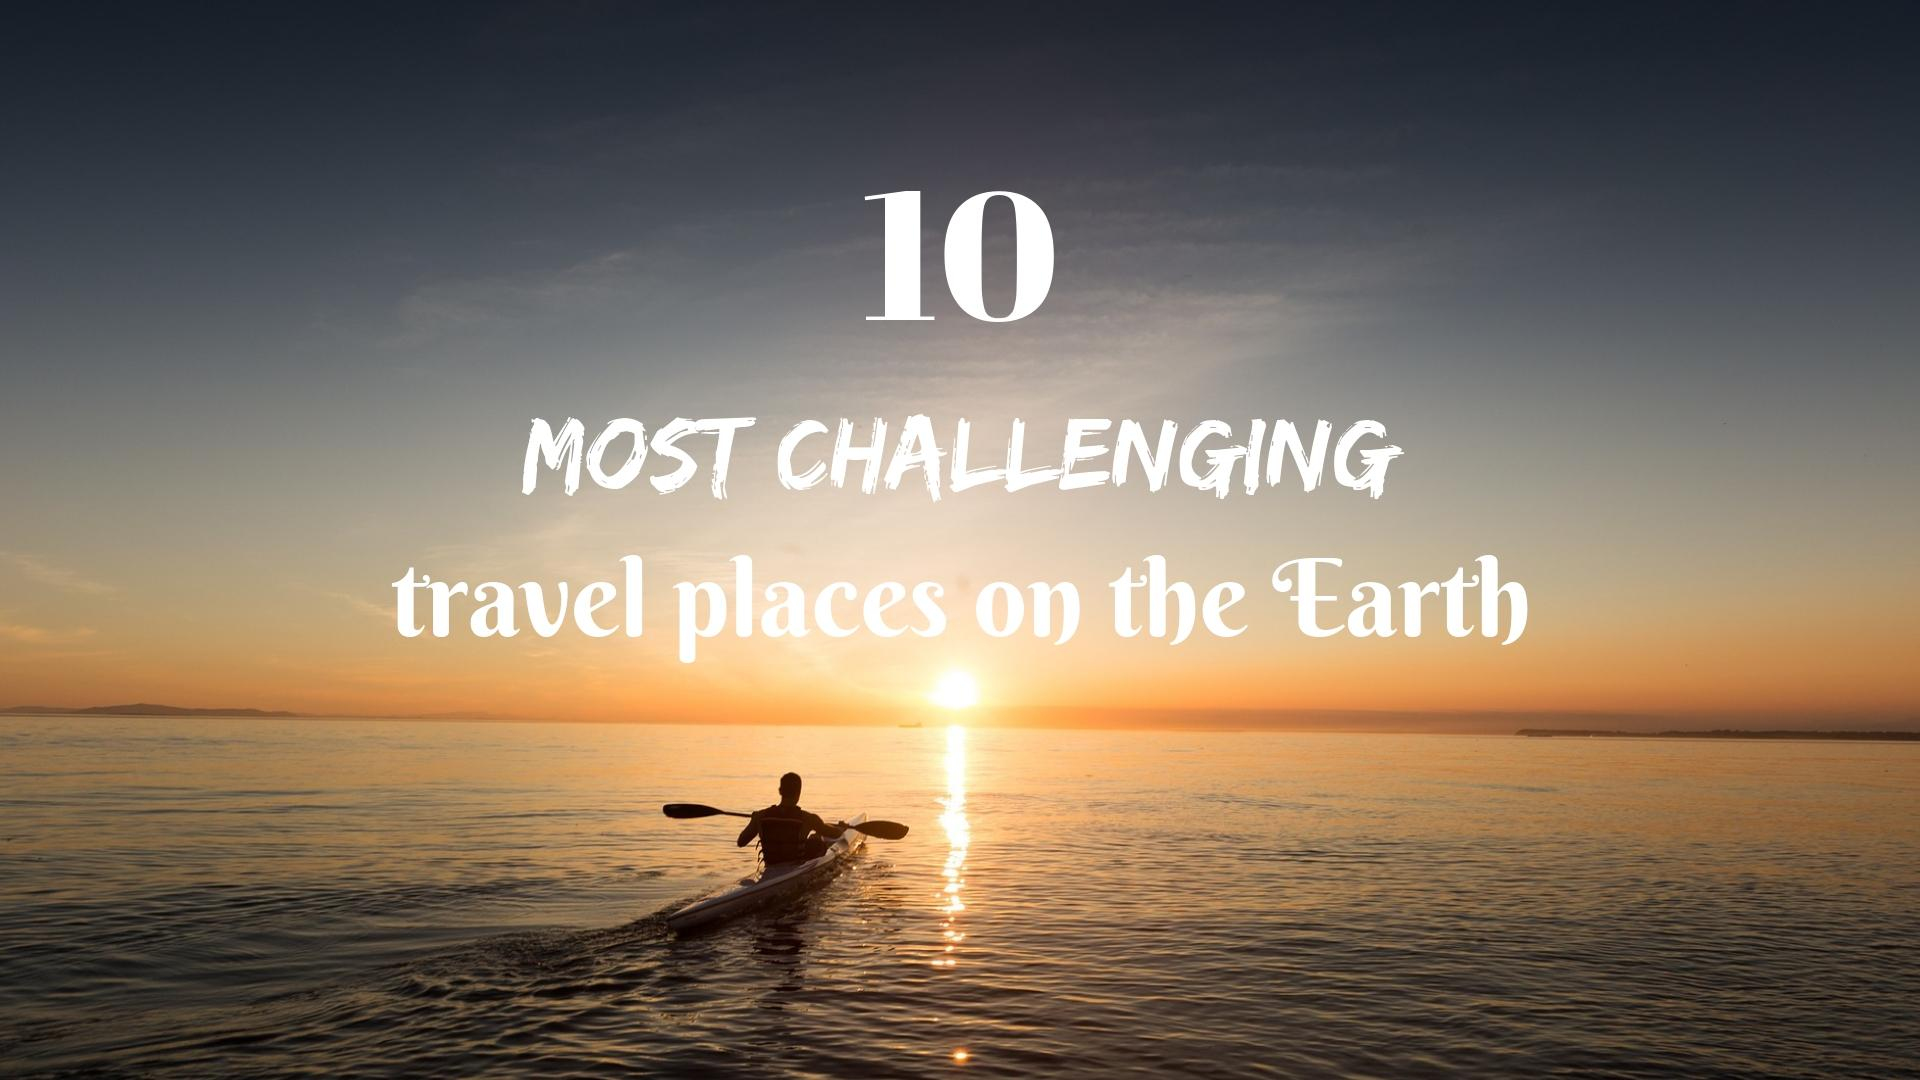 10 MOST CHALLENGING TRAVEL PLACES ON THE EARTH (Update)